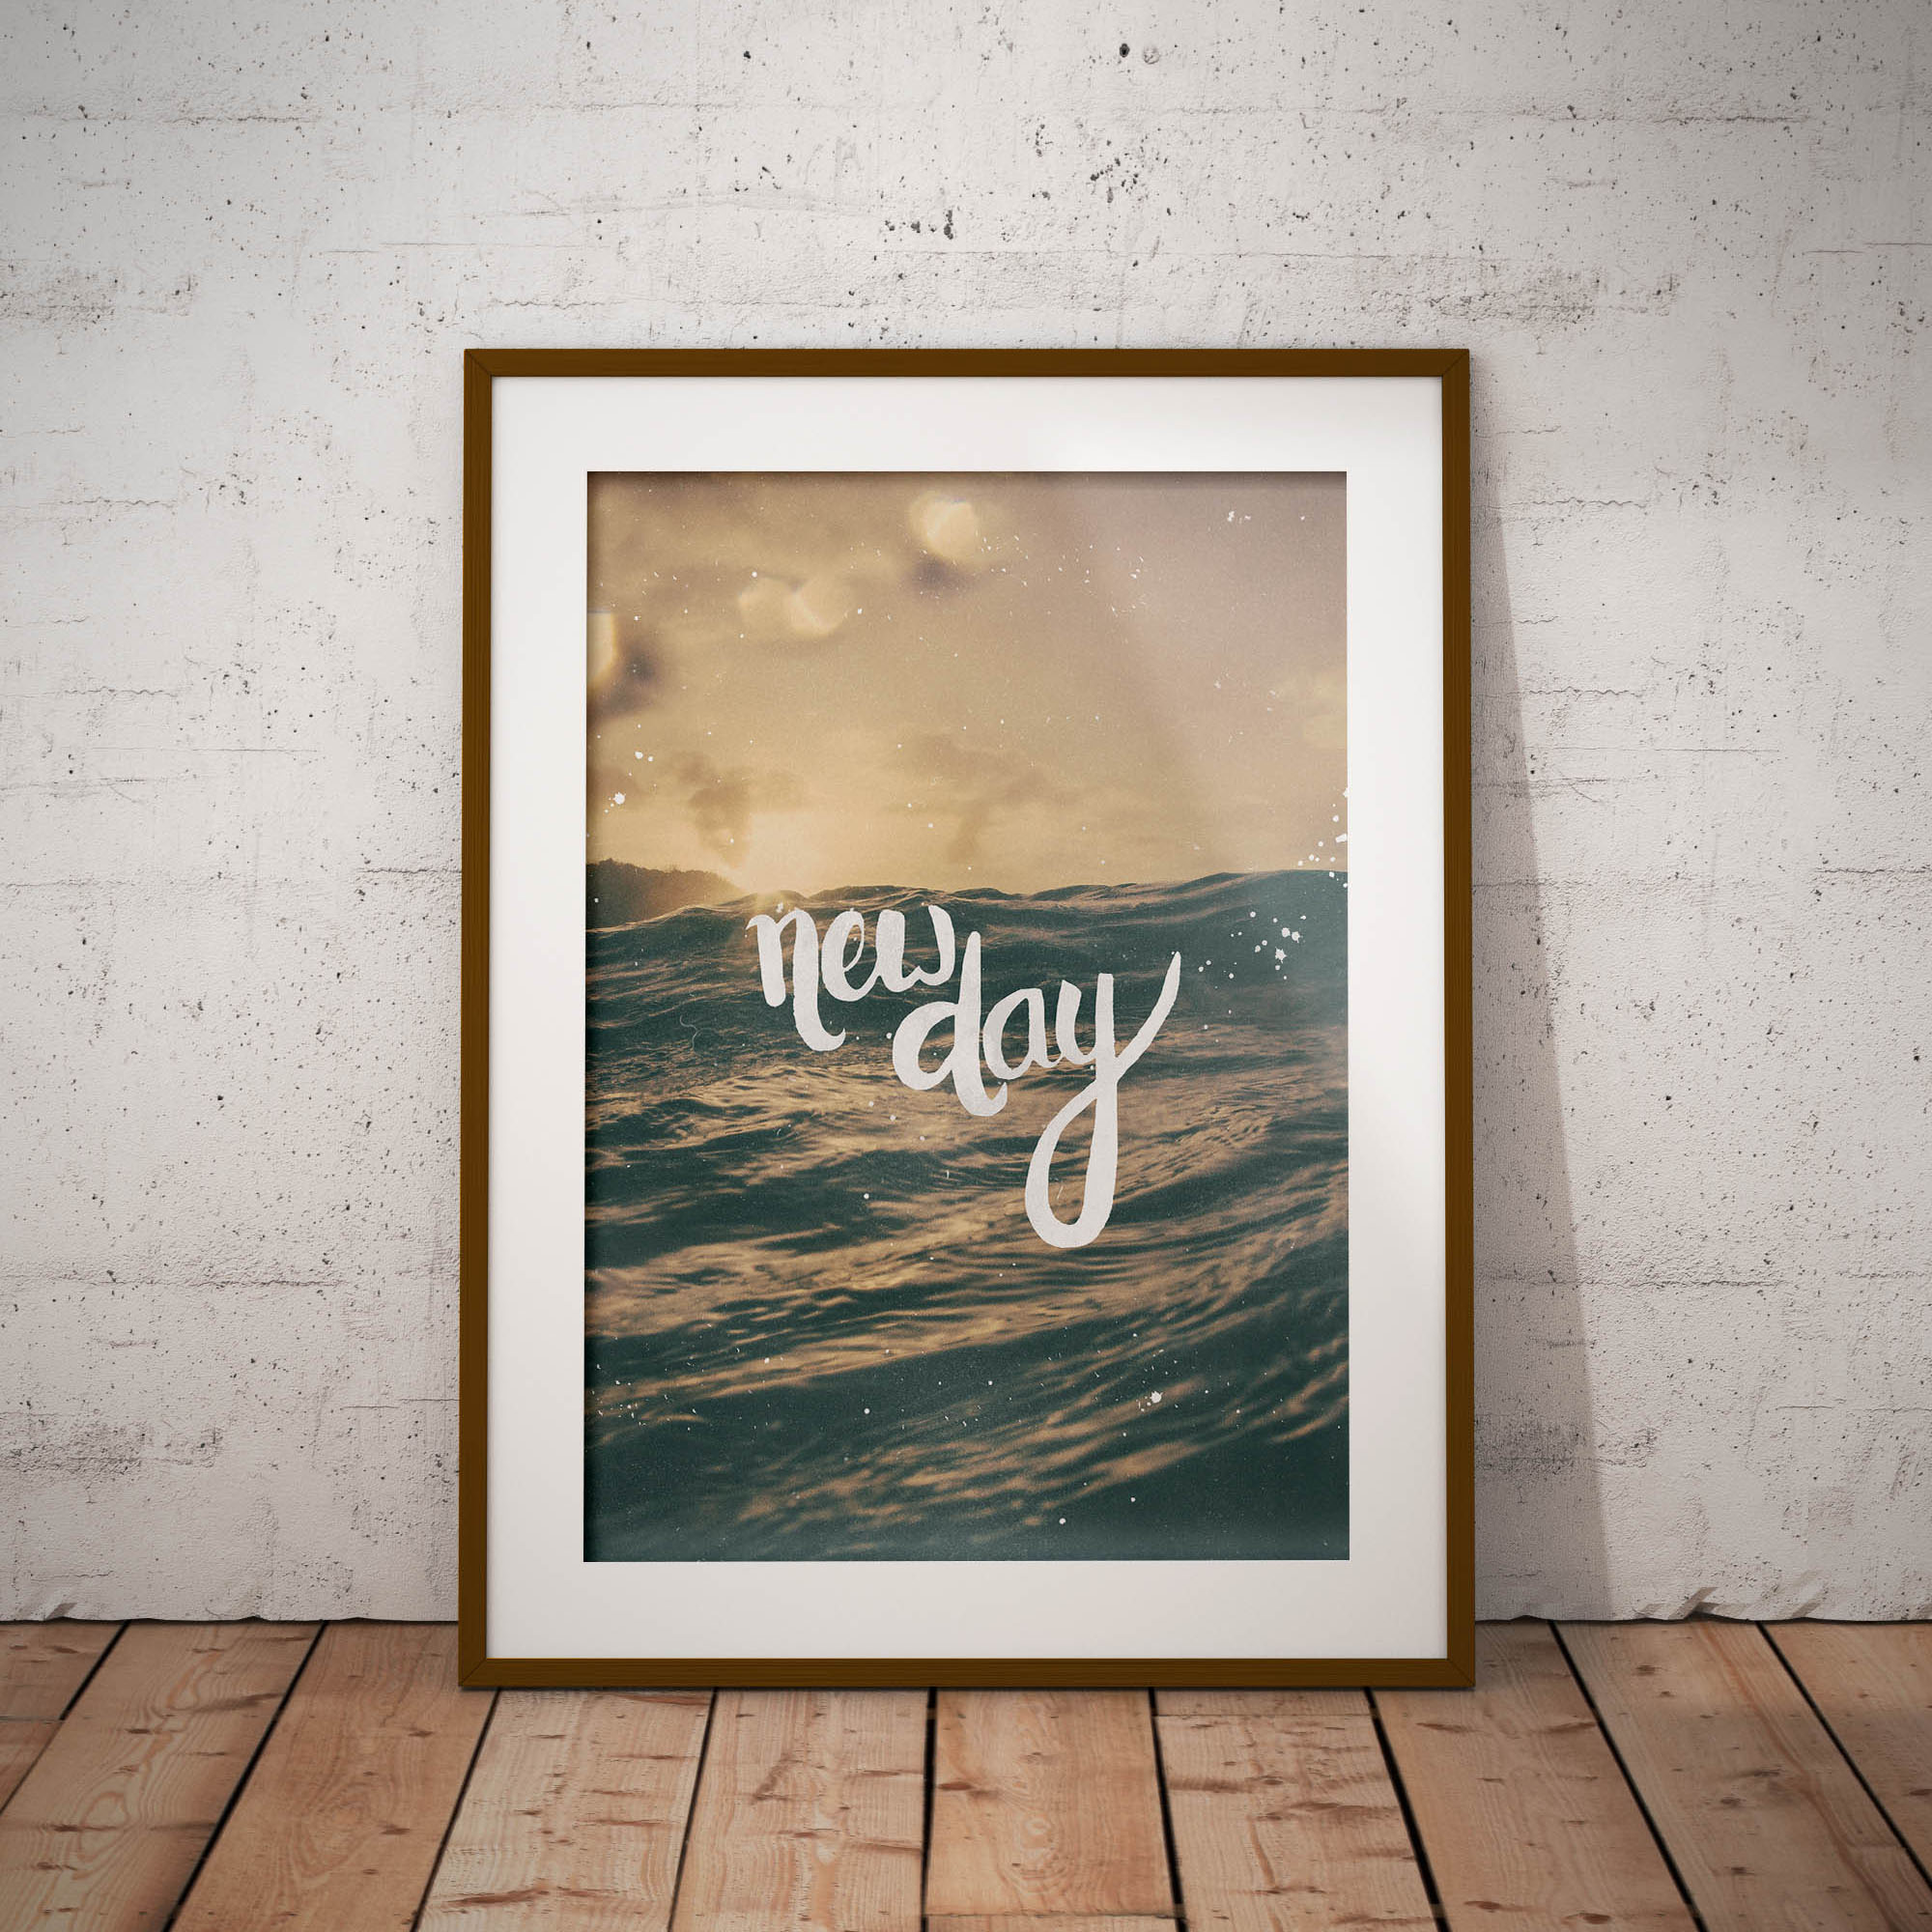 New Day – Latest Design In Store